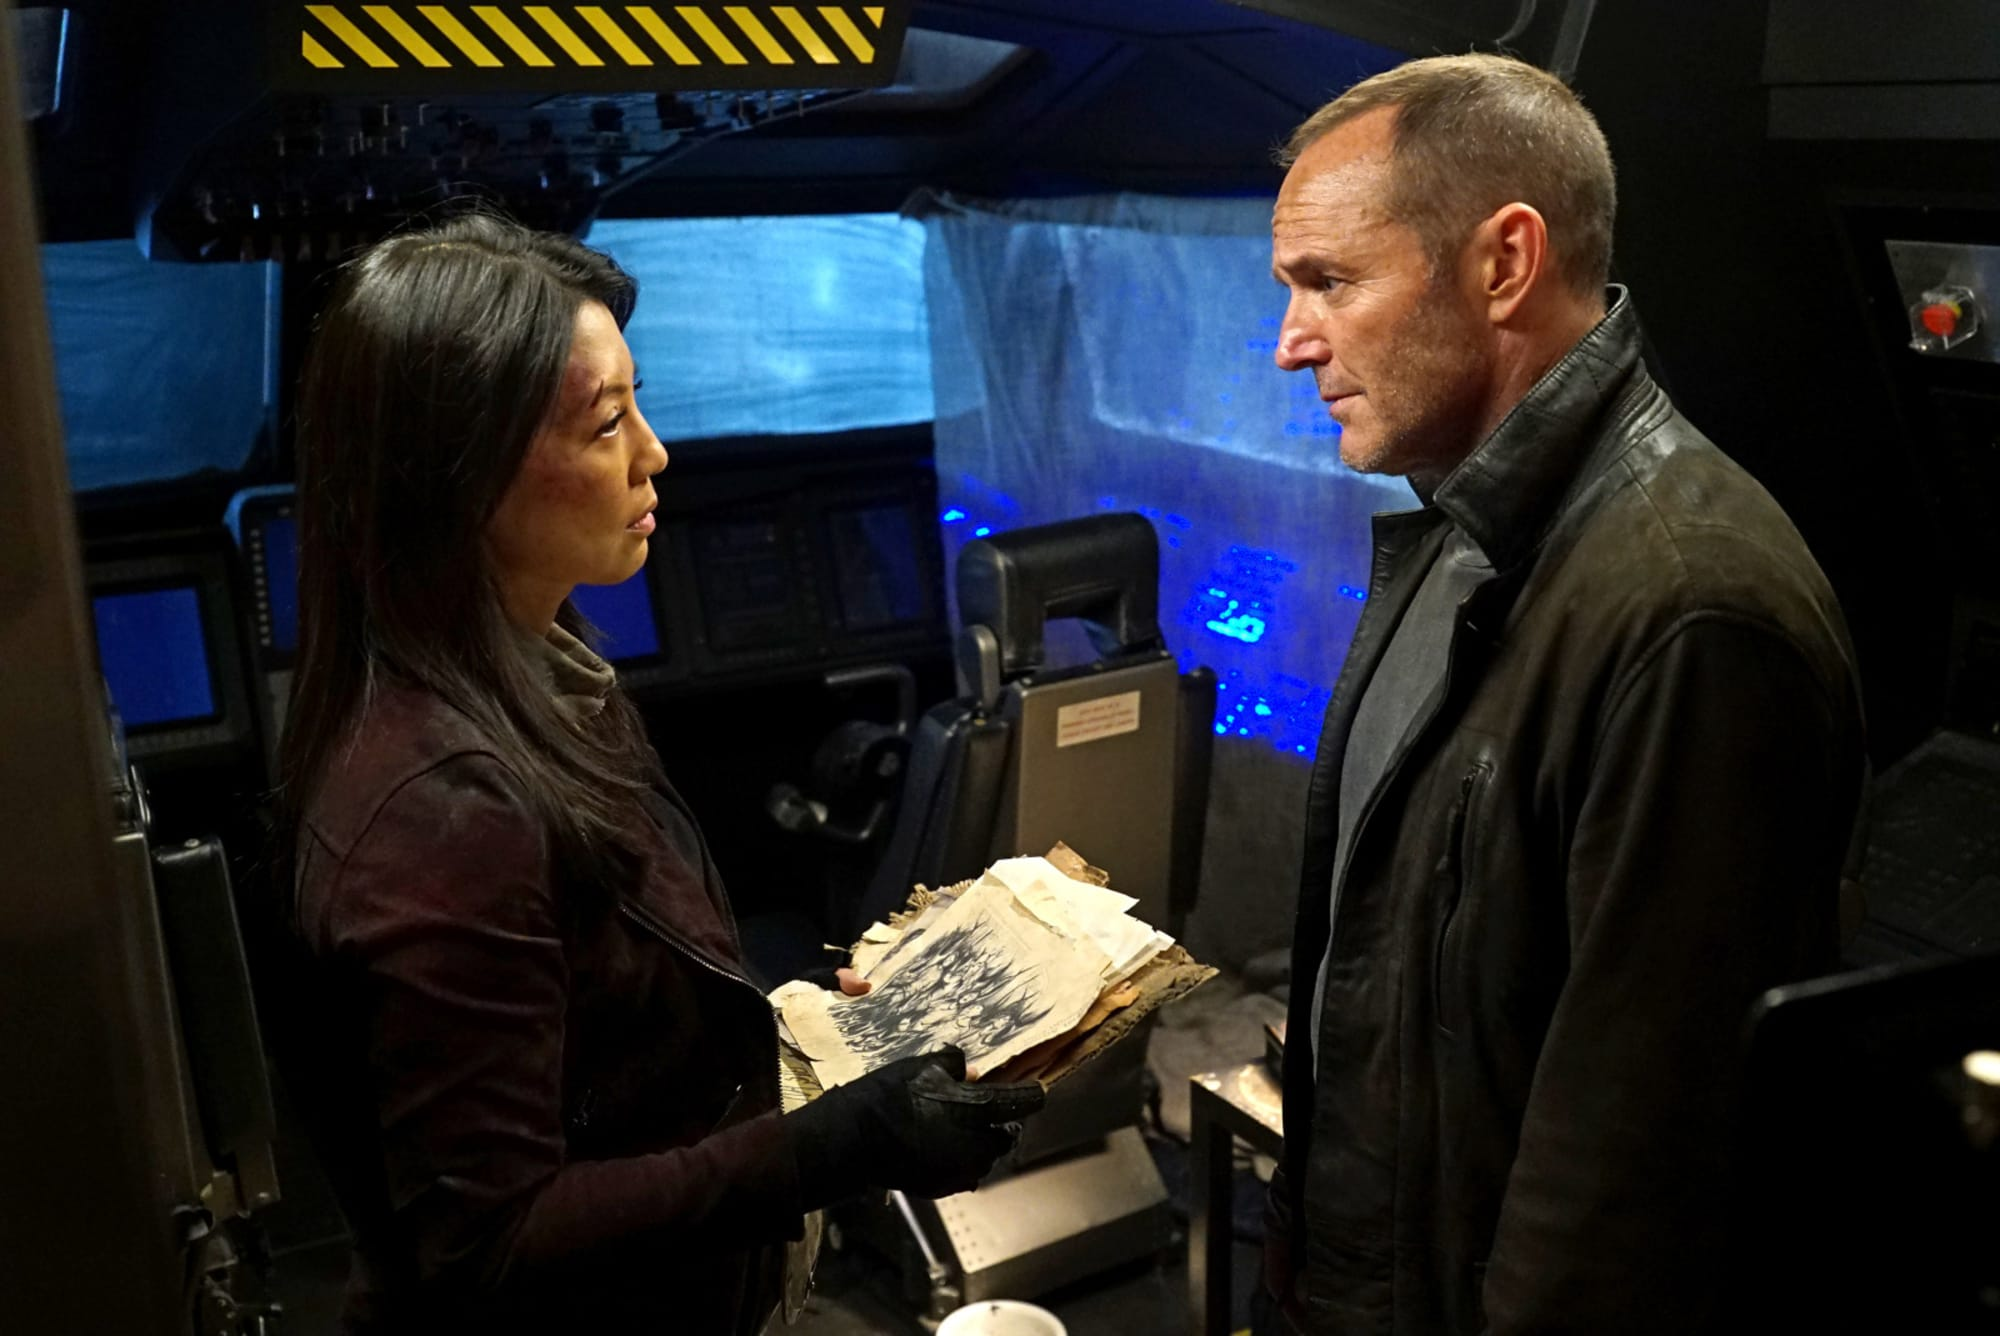 Did Disney erase Marvel's Agents of S.H.I.E.L.D. from the MCU canon?